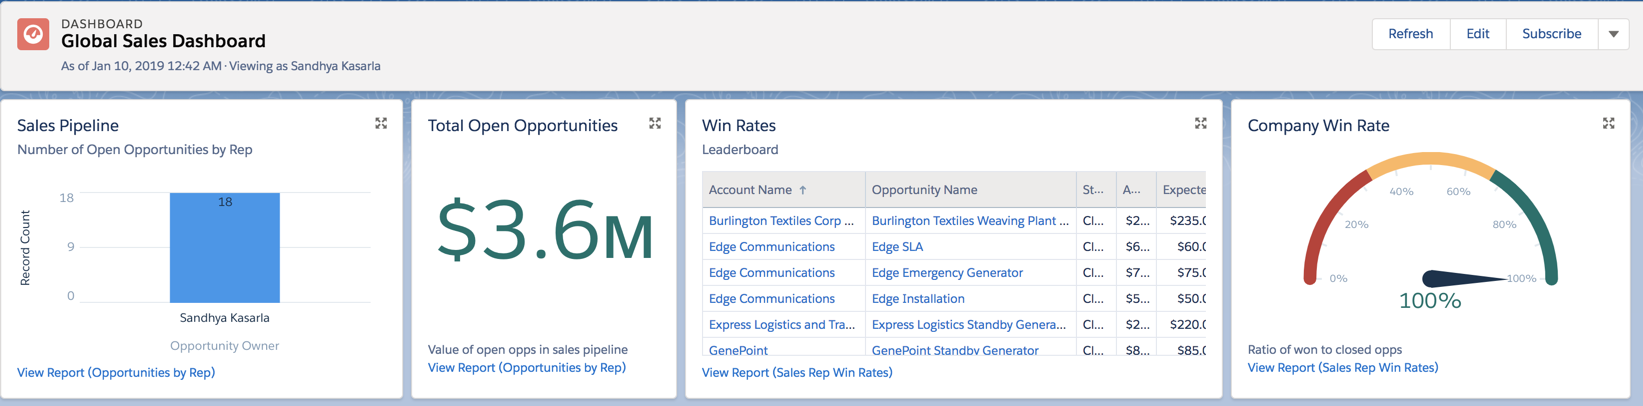 Global Sales Dashboard with components for Sales Pipeline, Total Open Opportunities, Win Rates, and Company Win Rates.